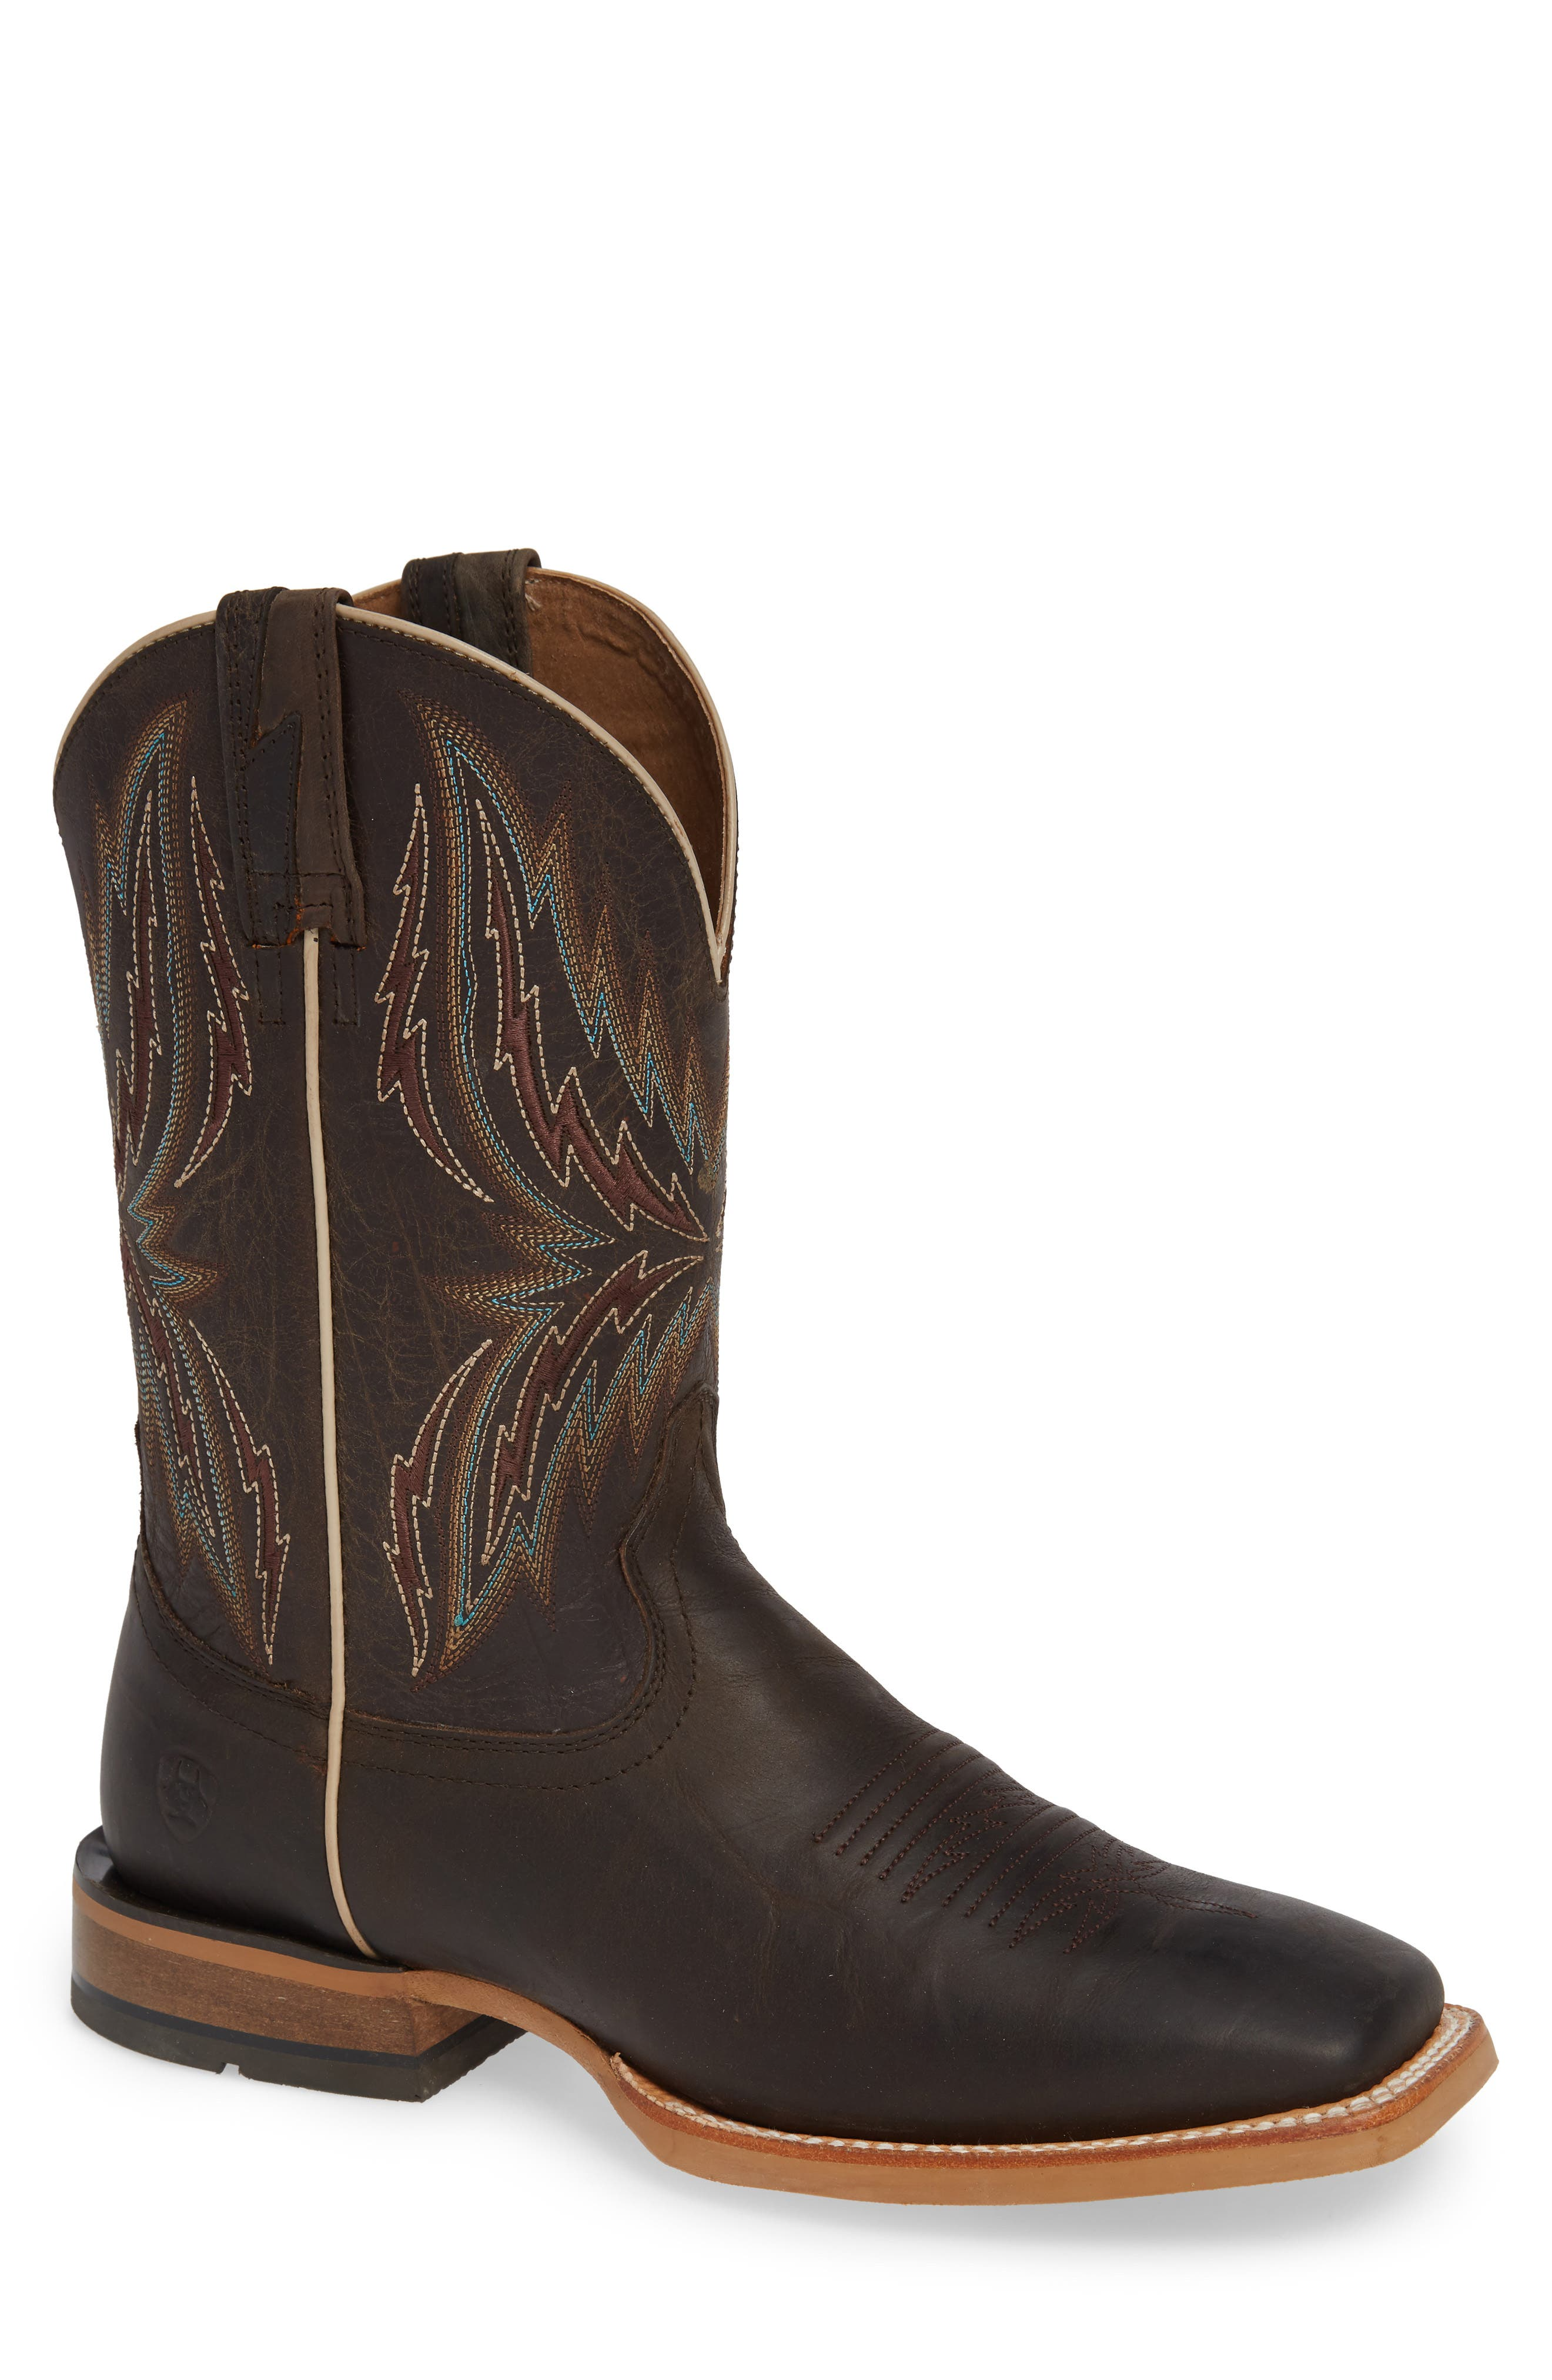 Arena Rebound Cowboy Boot, Main, color, BROWN/ DESERT LEATHER